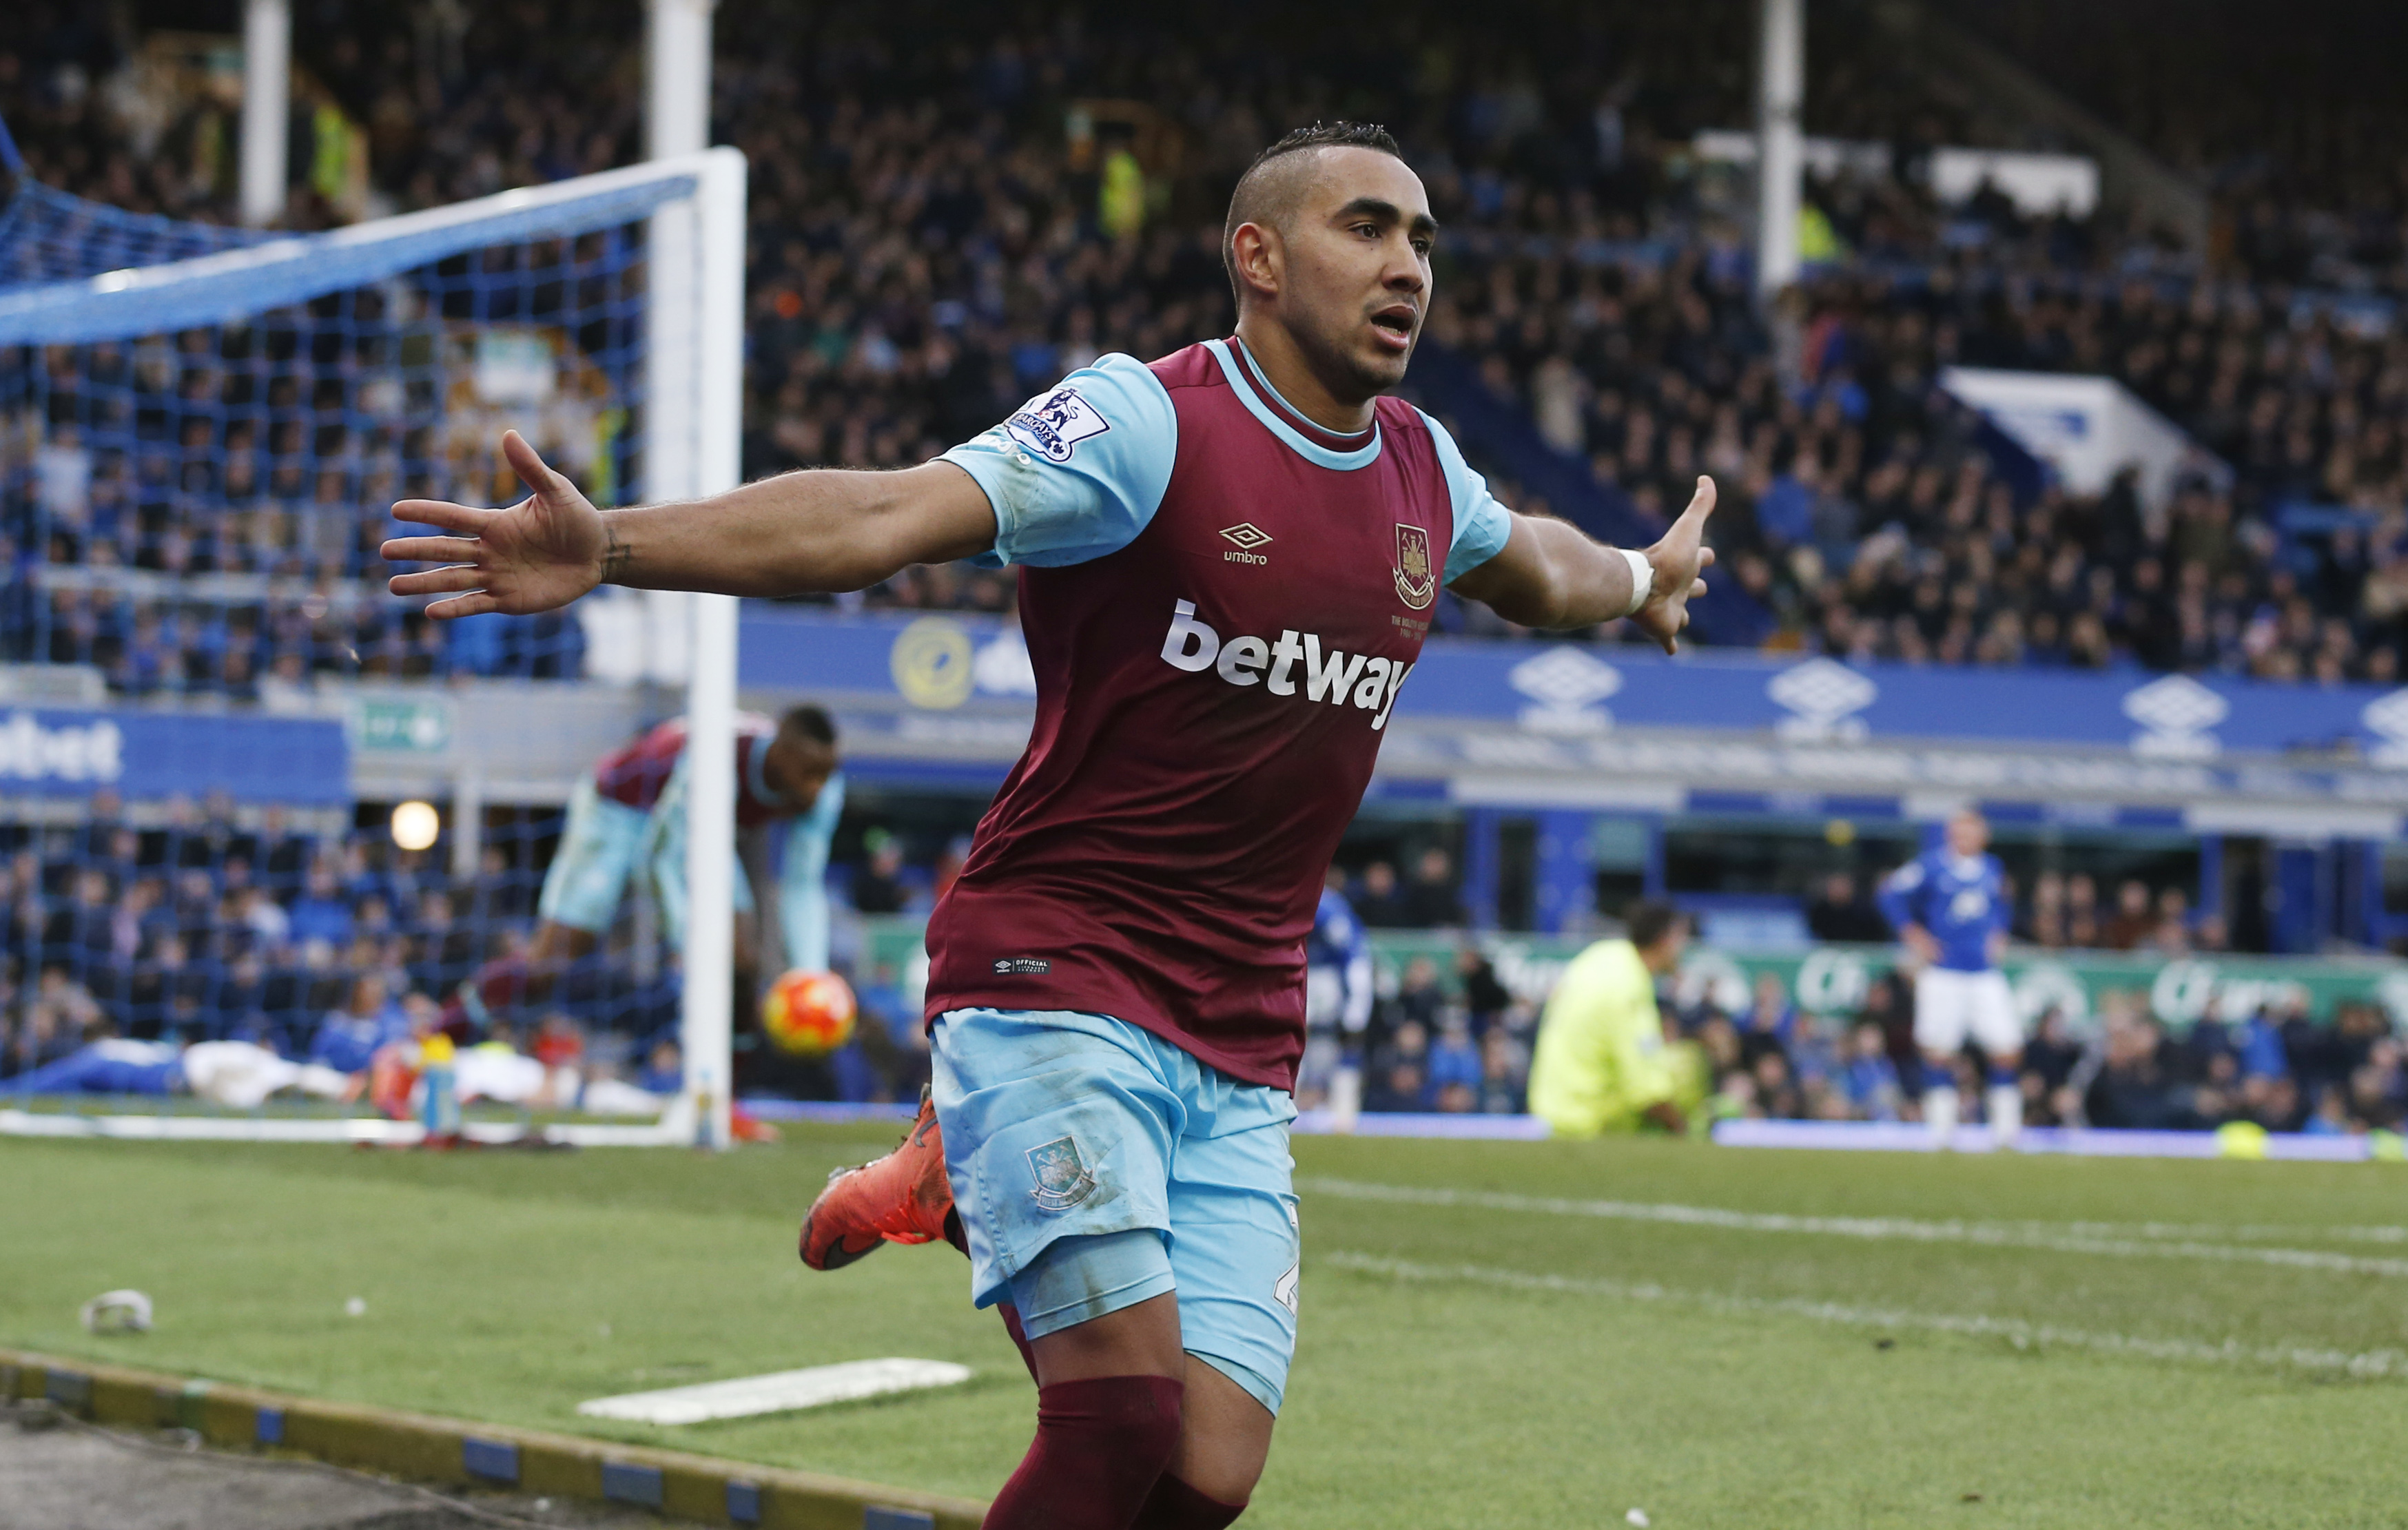 → Dimitri Payet and which other FPL midfielder finished on 171 points, the joint-fourth-highest total among players in this positional classification?